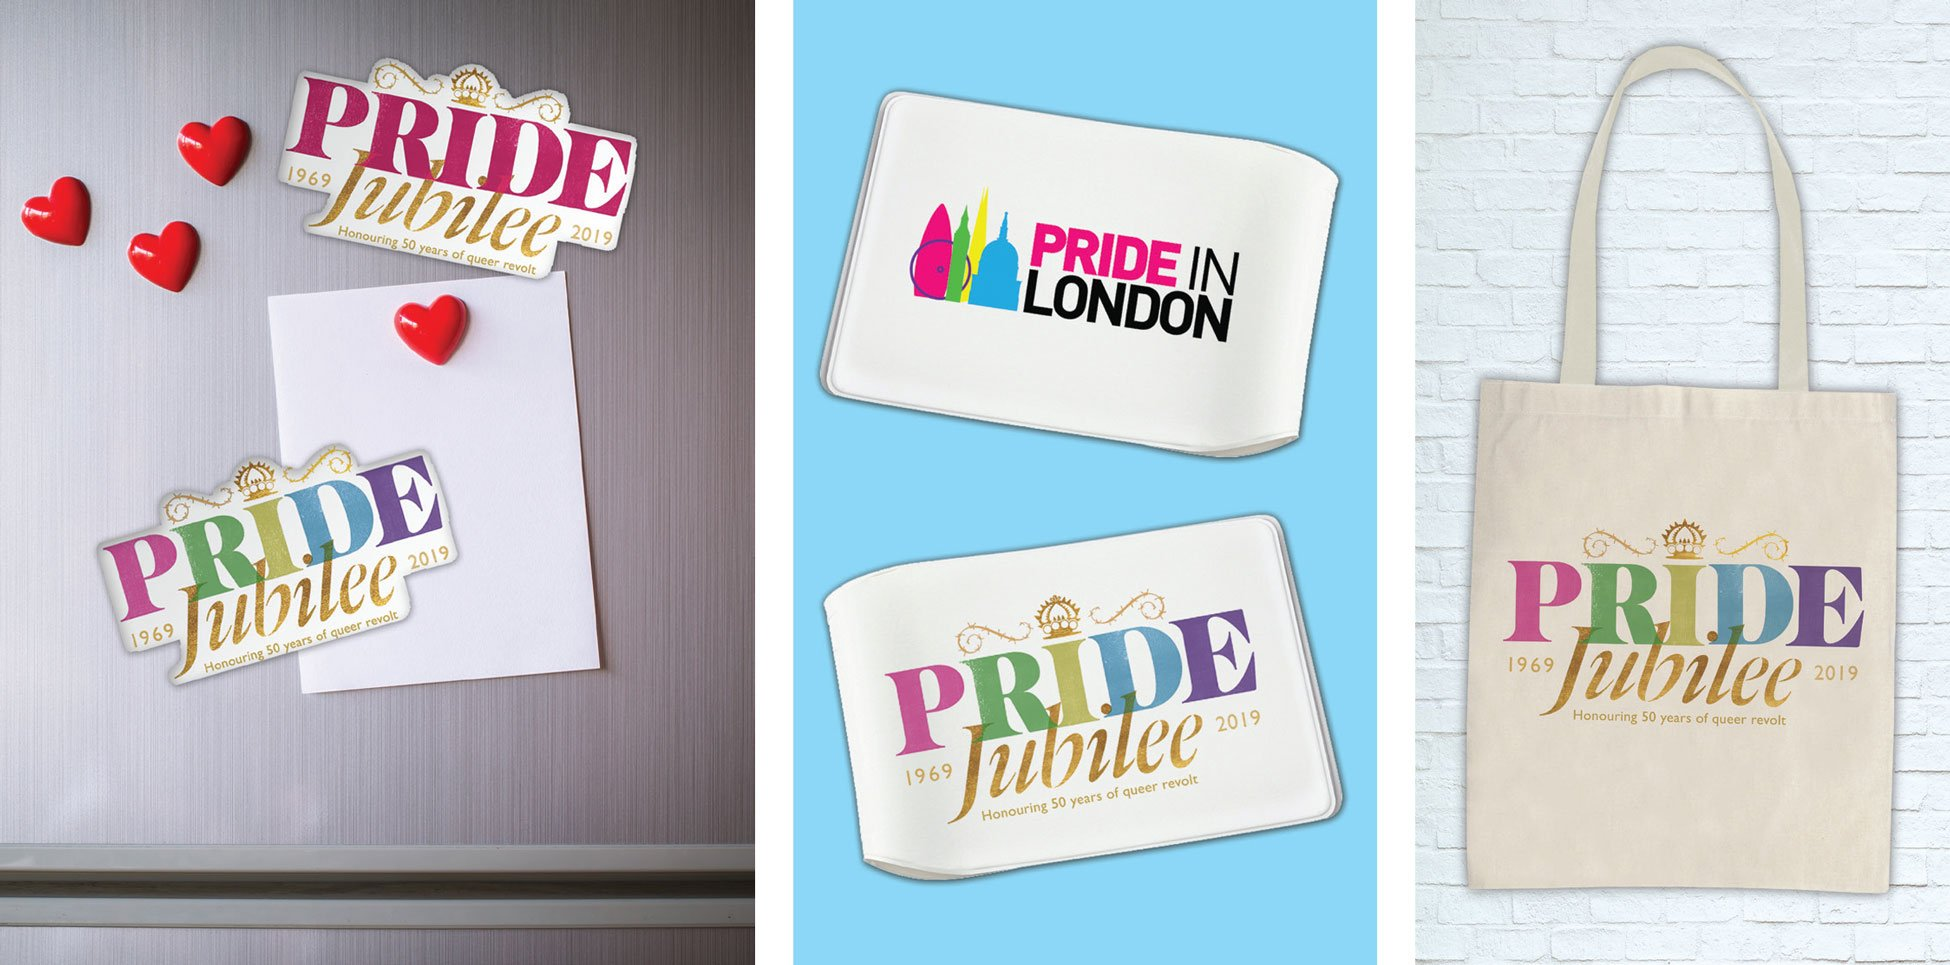 Pride in London - Fridge Magnets, Wallets & Tote Bags